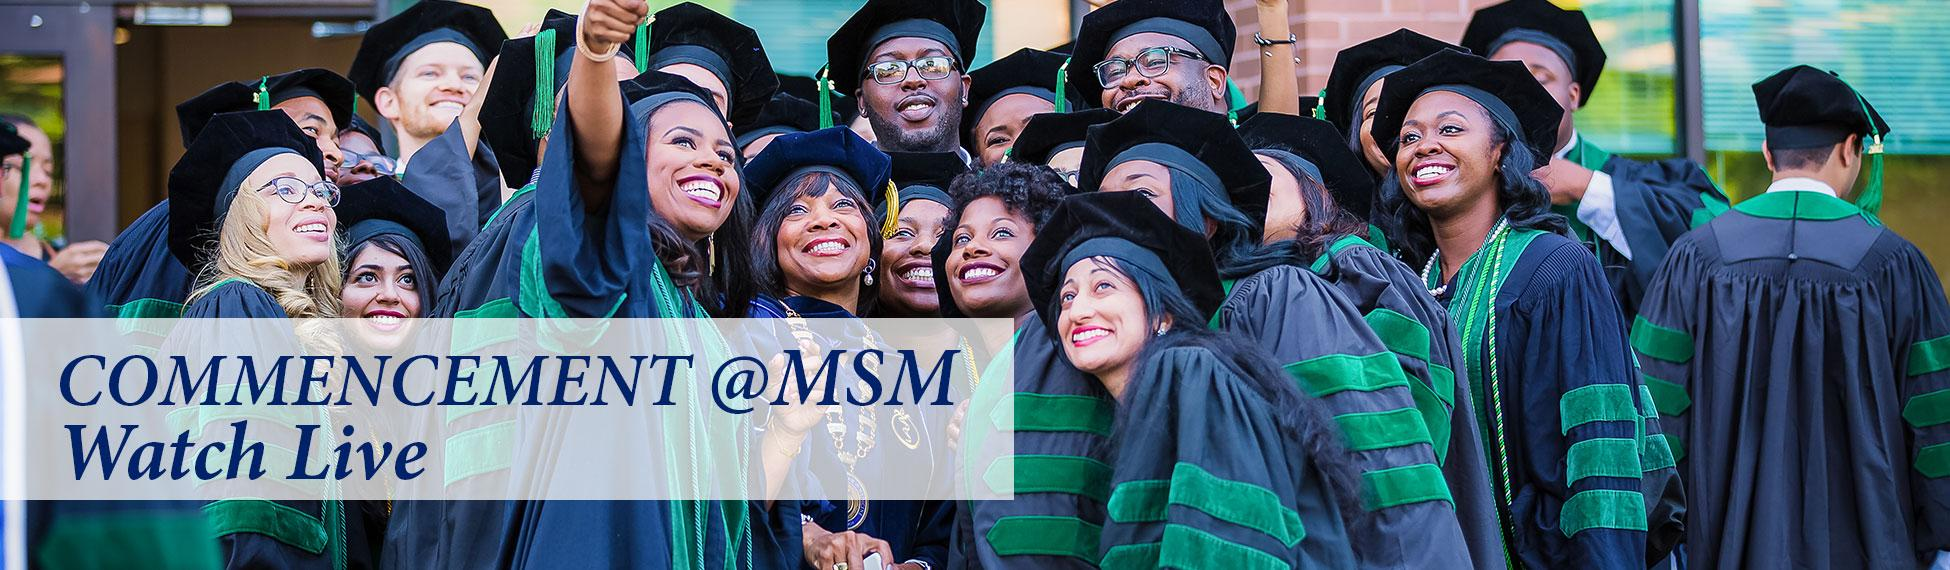 Commencement @ MSM: Watch Live